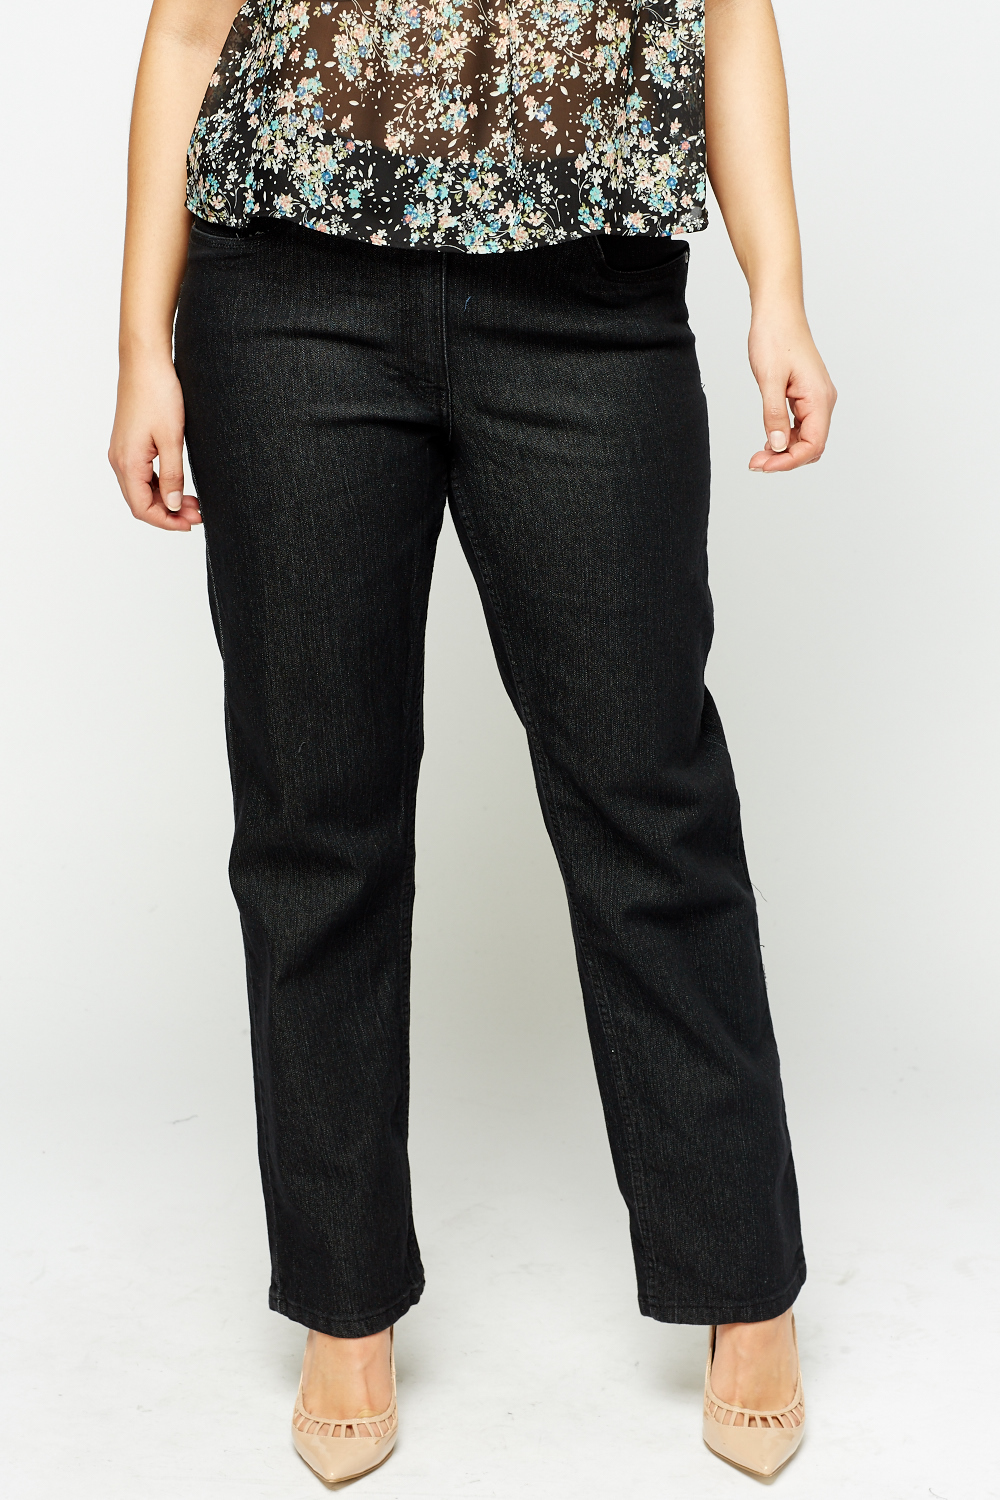 Product - FLYING MONKEY Womens Black Frayed Straight leg Jeans Size: 27 Waist. Product Image. Product - RALPH LAUREN Womens Black Straight leg Jeans Size: Product Image. Price $ Product Title. RALPH LAUREN Womens Black Straight leg Jeans Size: Add To Cart. There is a problem adding to cart. Please try again.